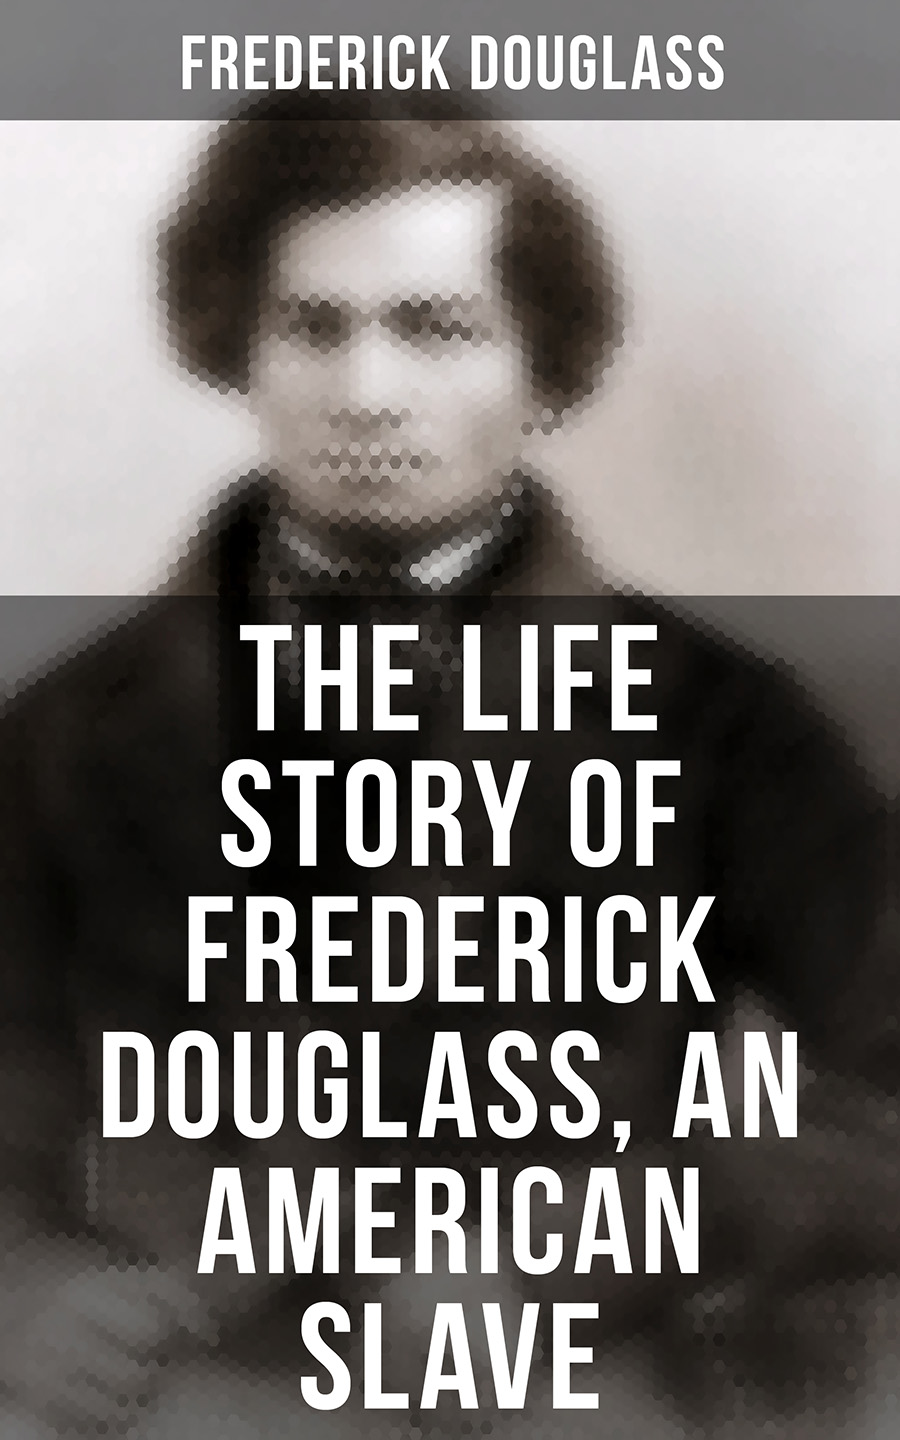 Frederick Douglass The Life Story of Frederick Douglass, an American Slave